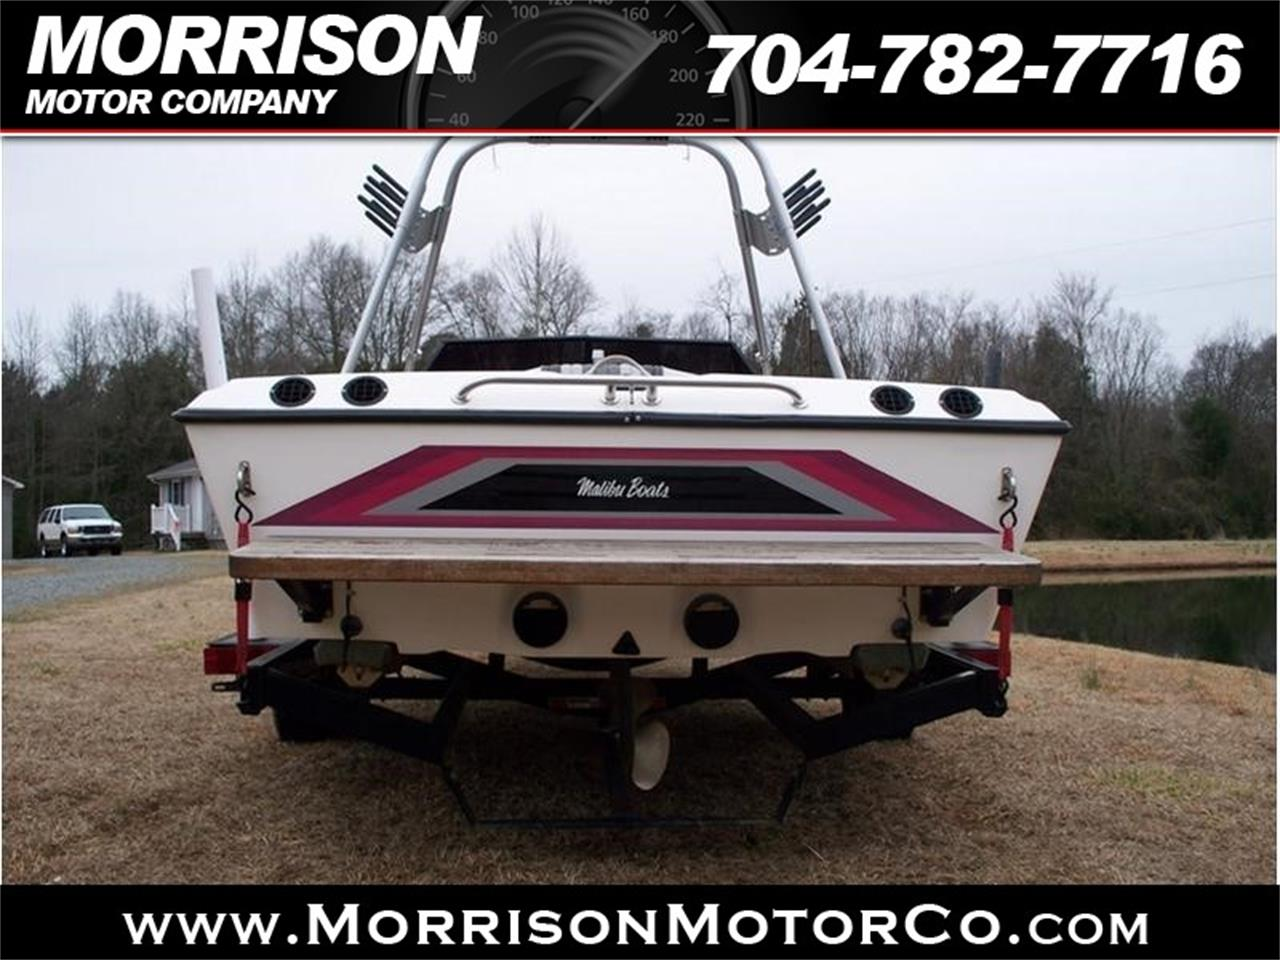 1991 Miscellaneous Boat for sale in Concord, NC – photo 11